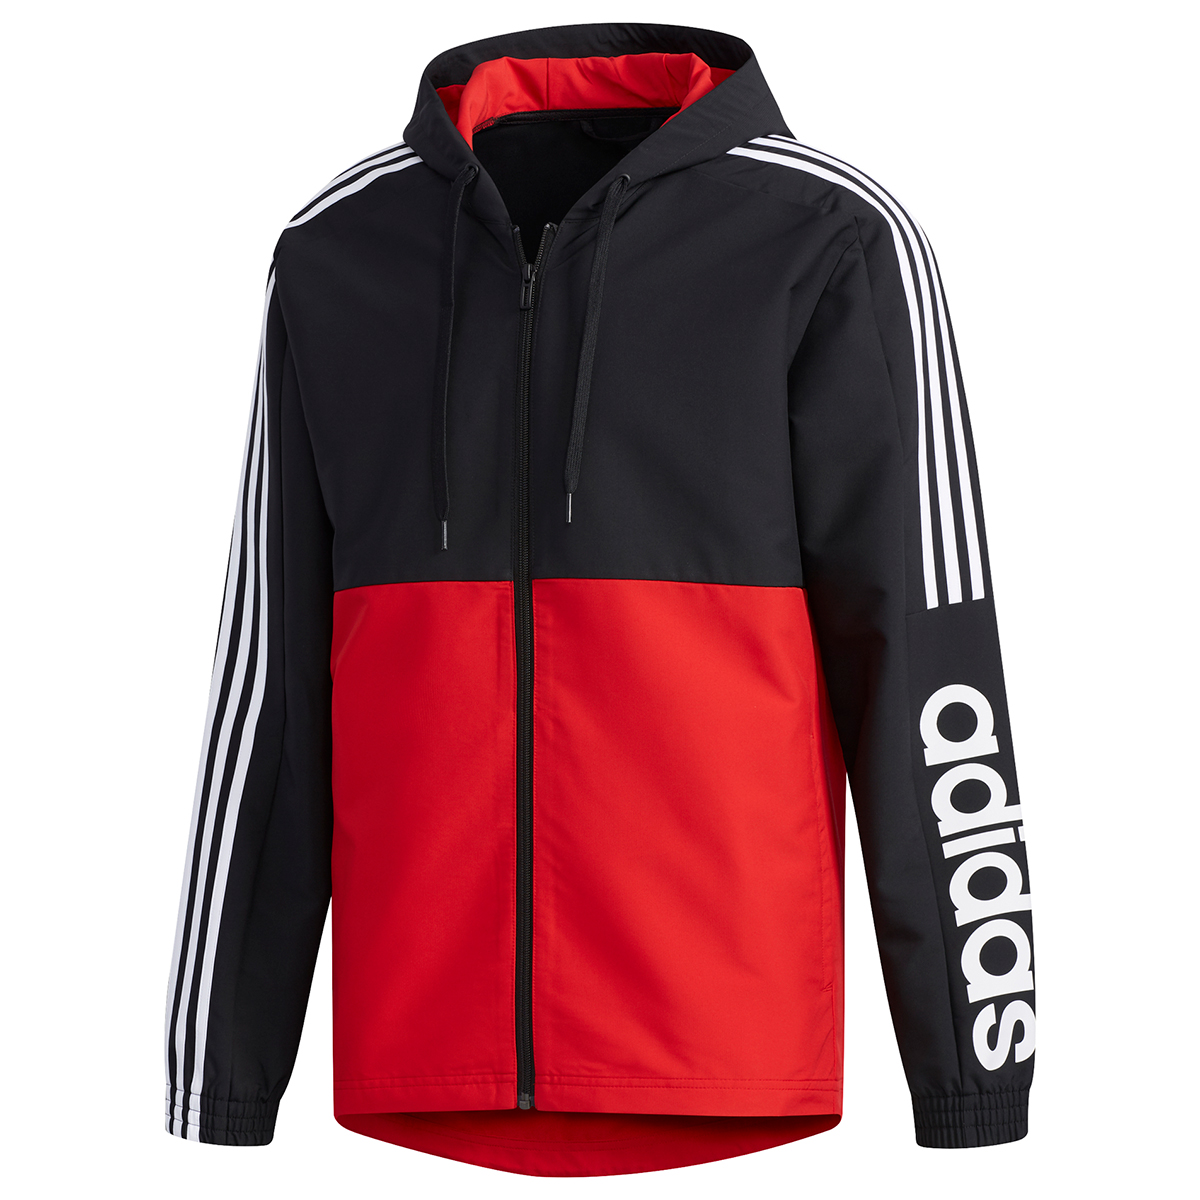 Adidas Men's Essential Colorblock Windbreaker Jacket - Black, XXL